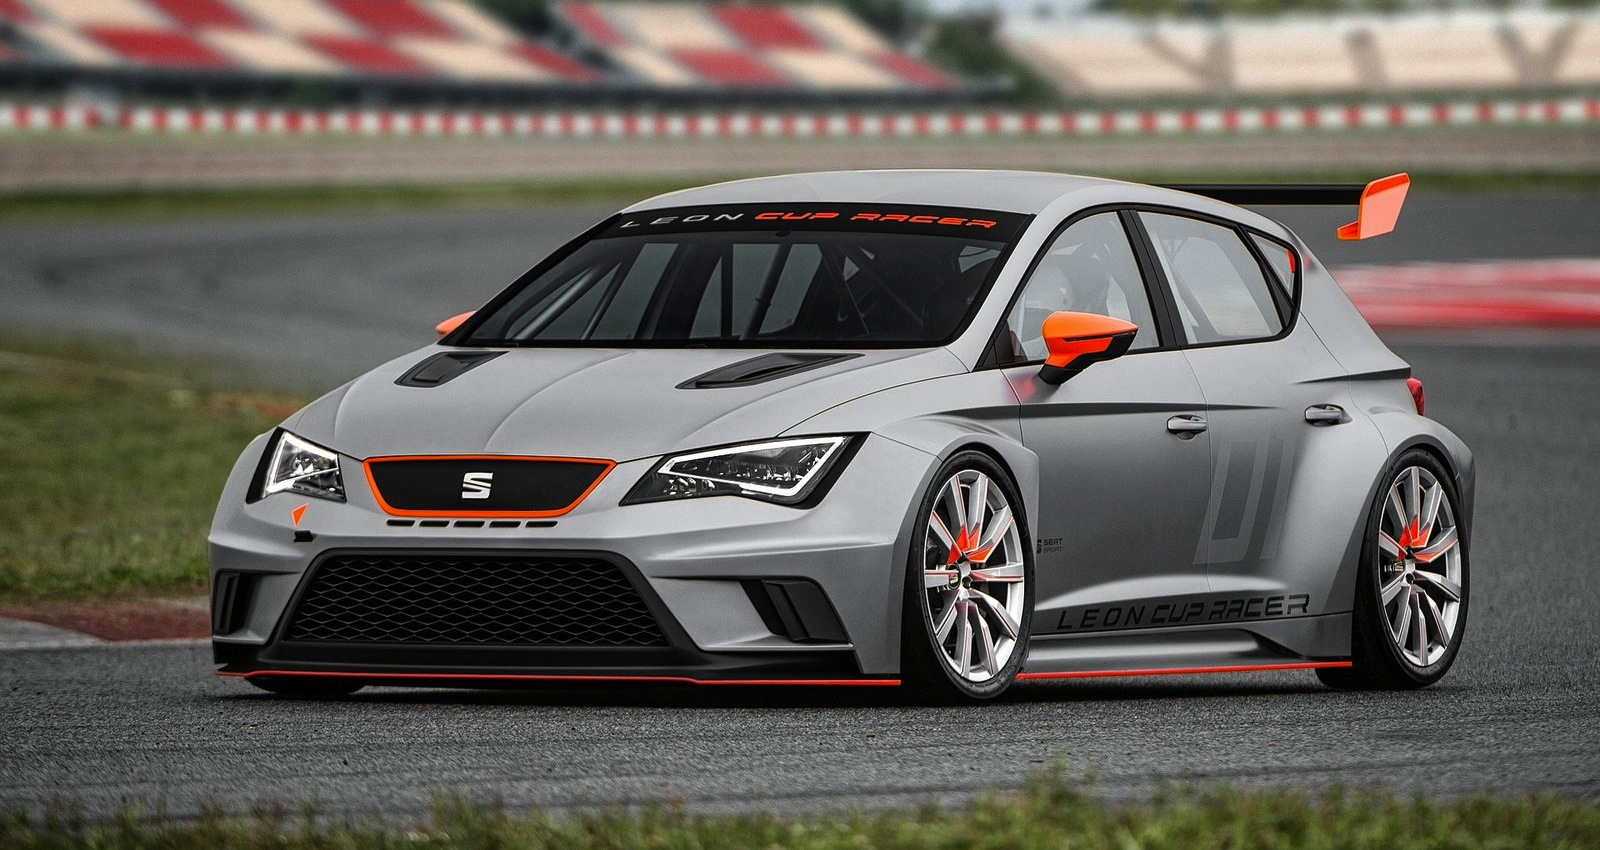 Seat Confident It Could Take Back Nurburgring Record From